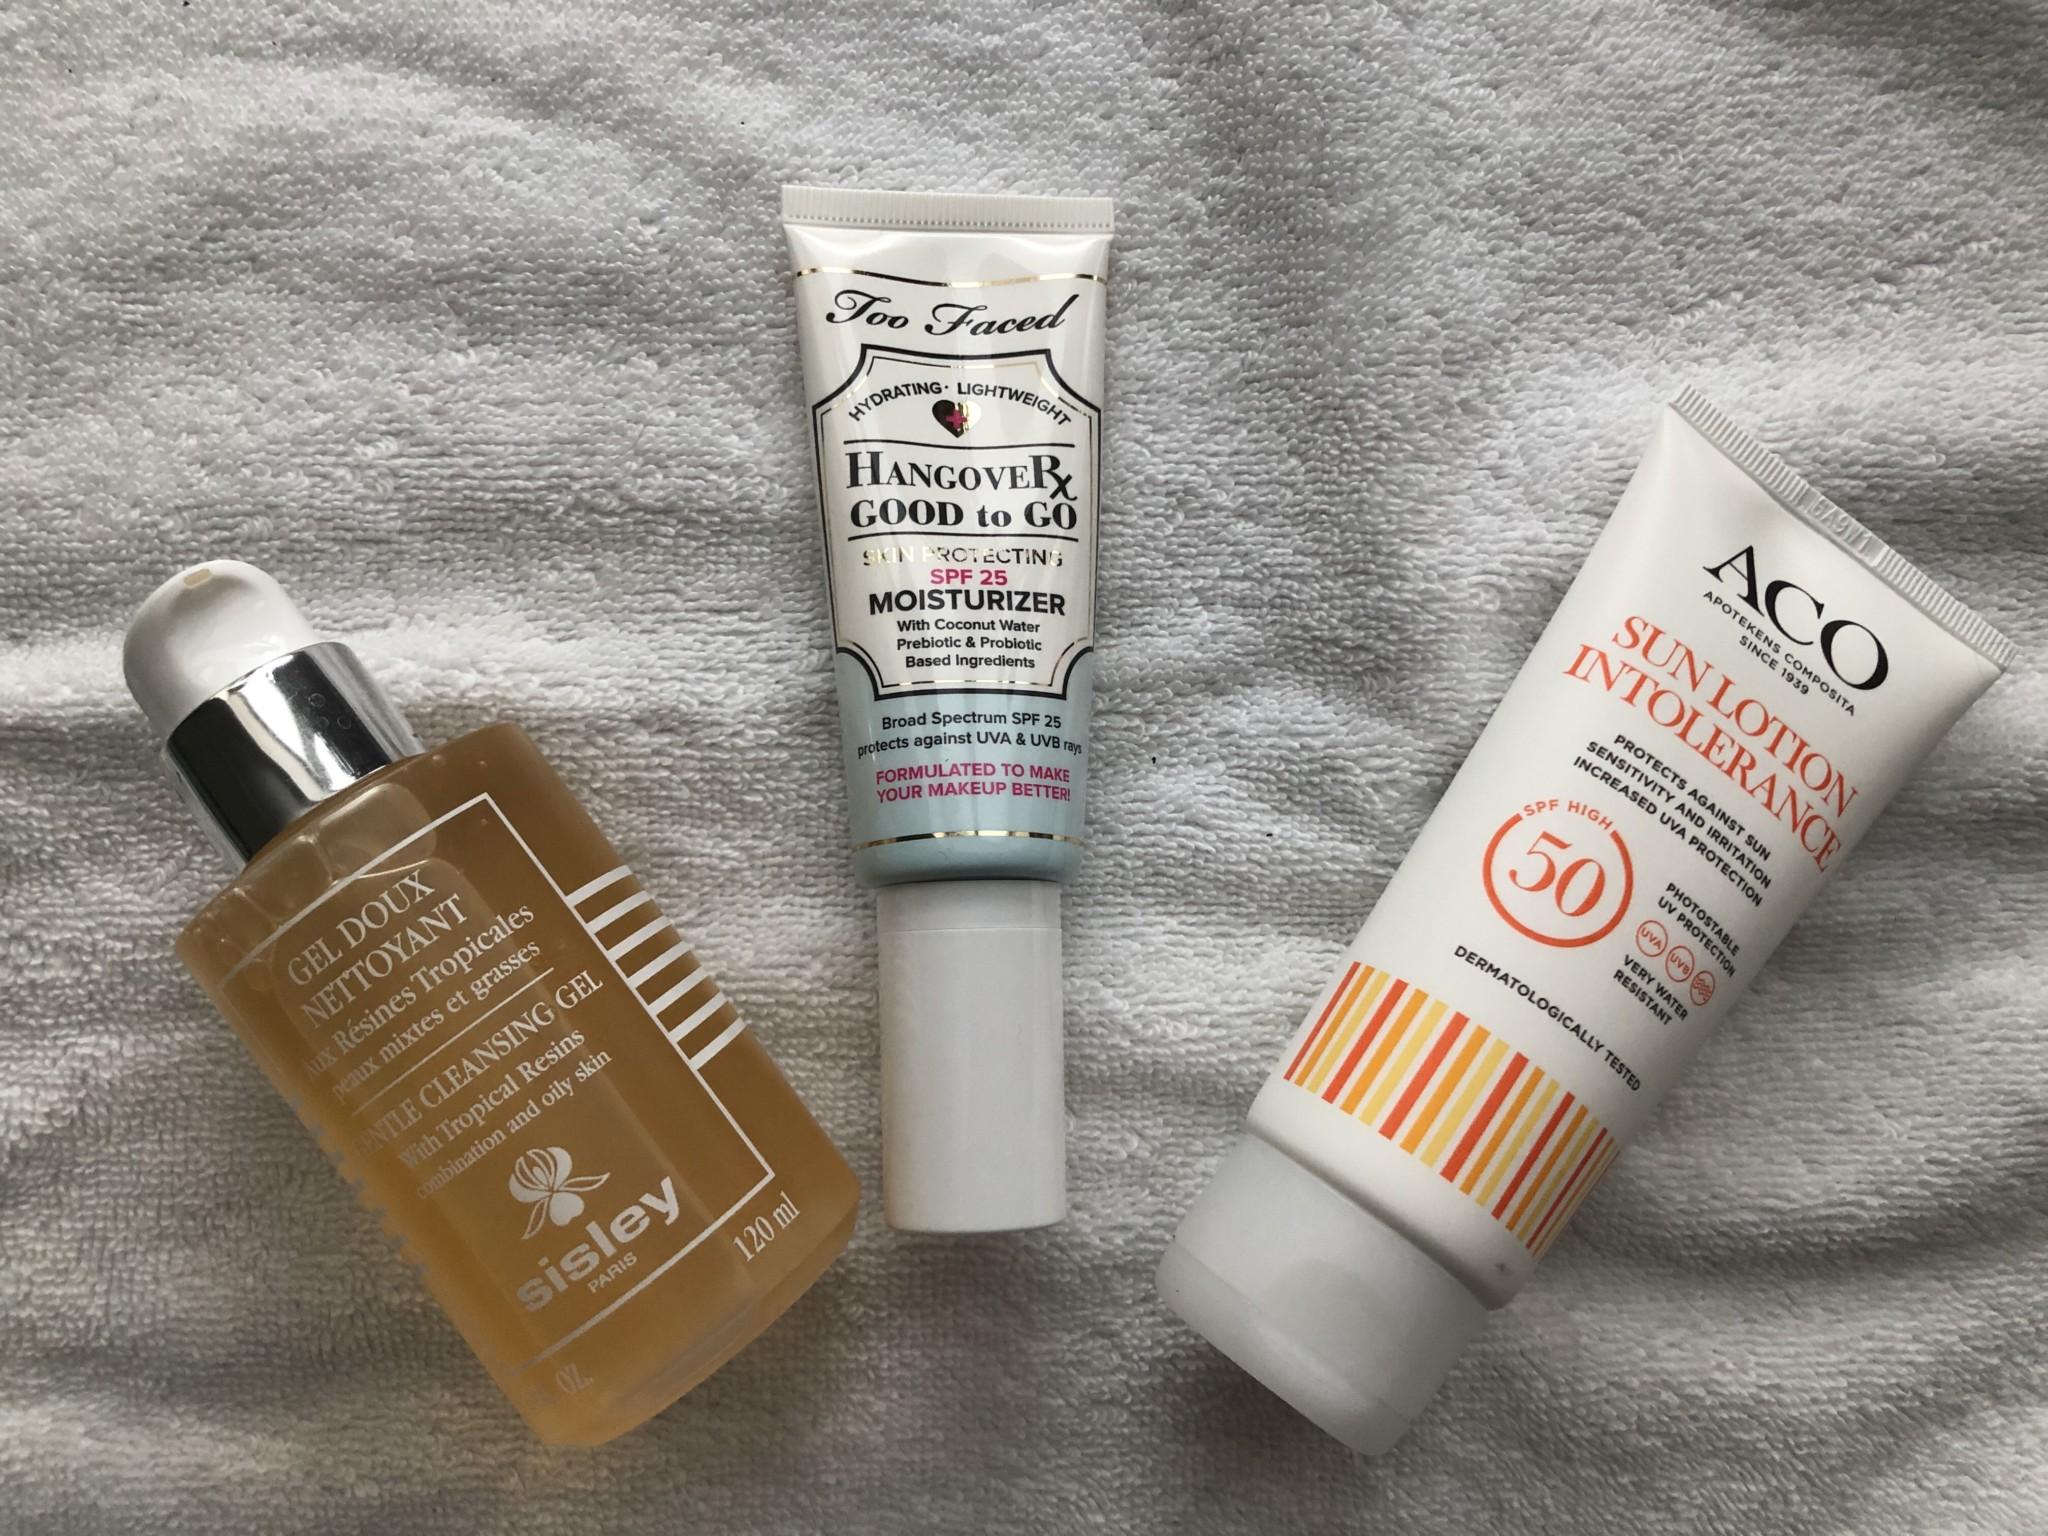 Sisley Gentle Cleansing Gel, Too Faced hangover Good To Go Moisturizer, ACO Sun Lotion Intolerance.